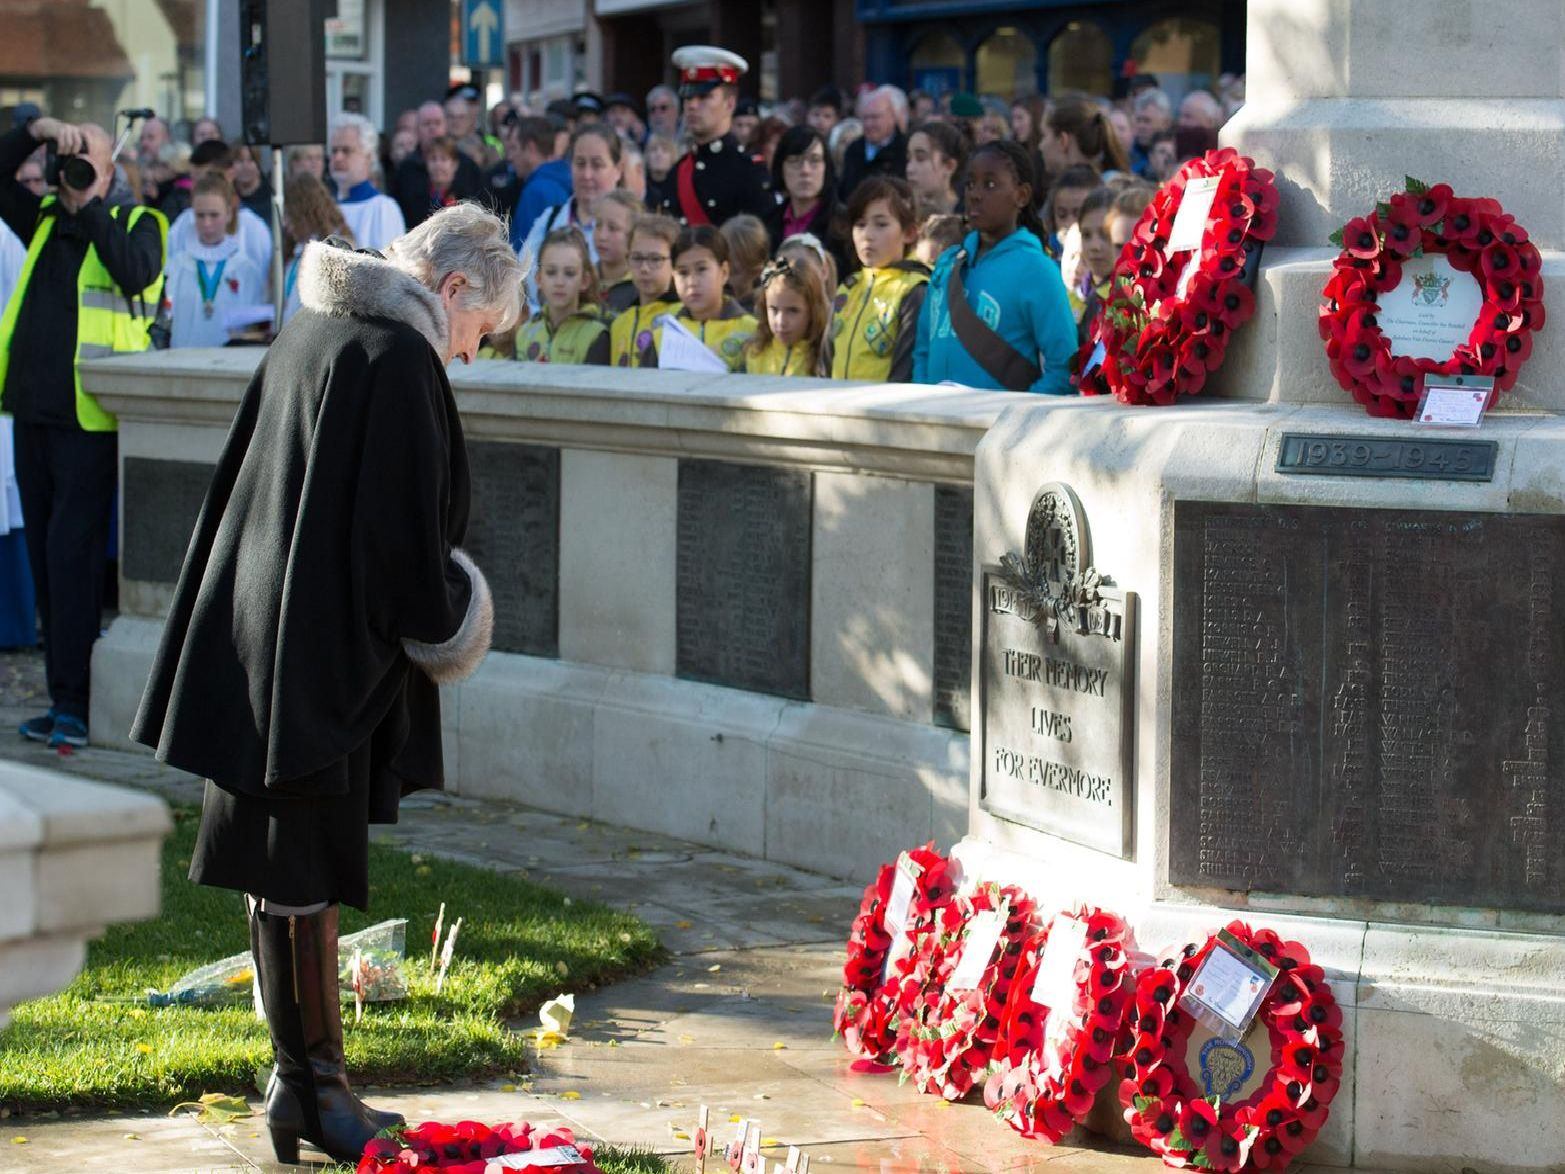 Wreaths laid at the war memorial in Market Square, Aylesbury